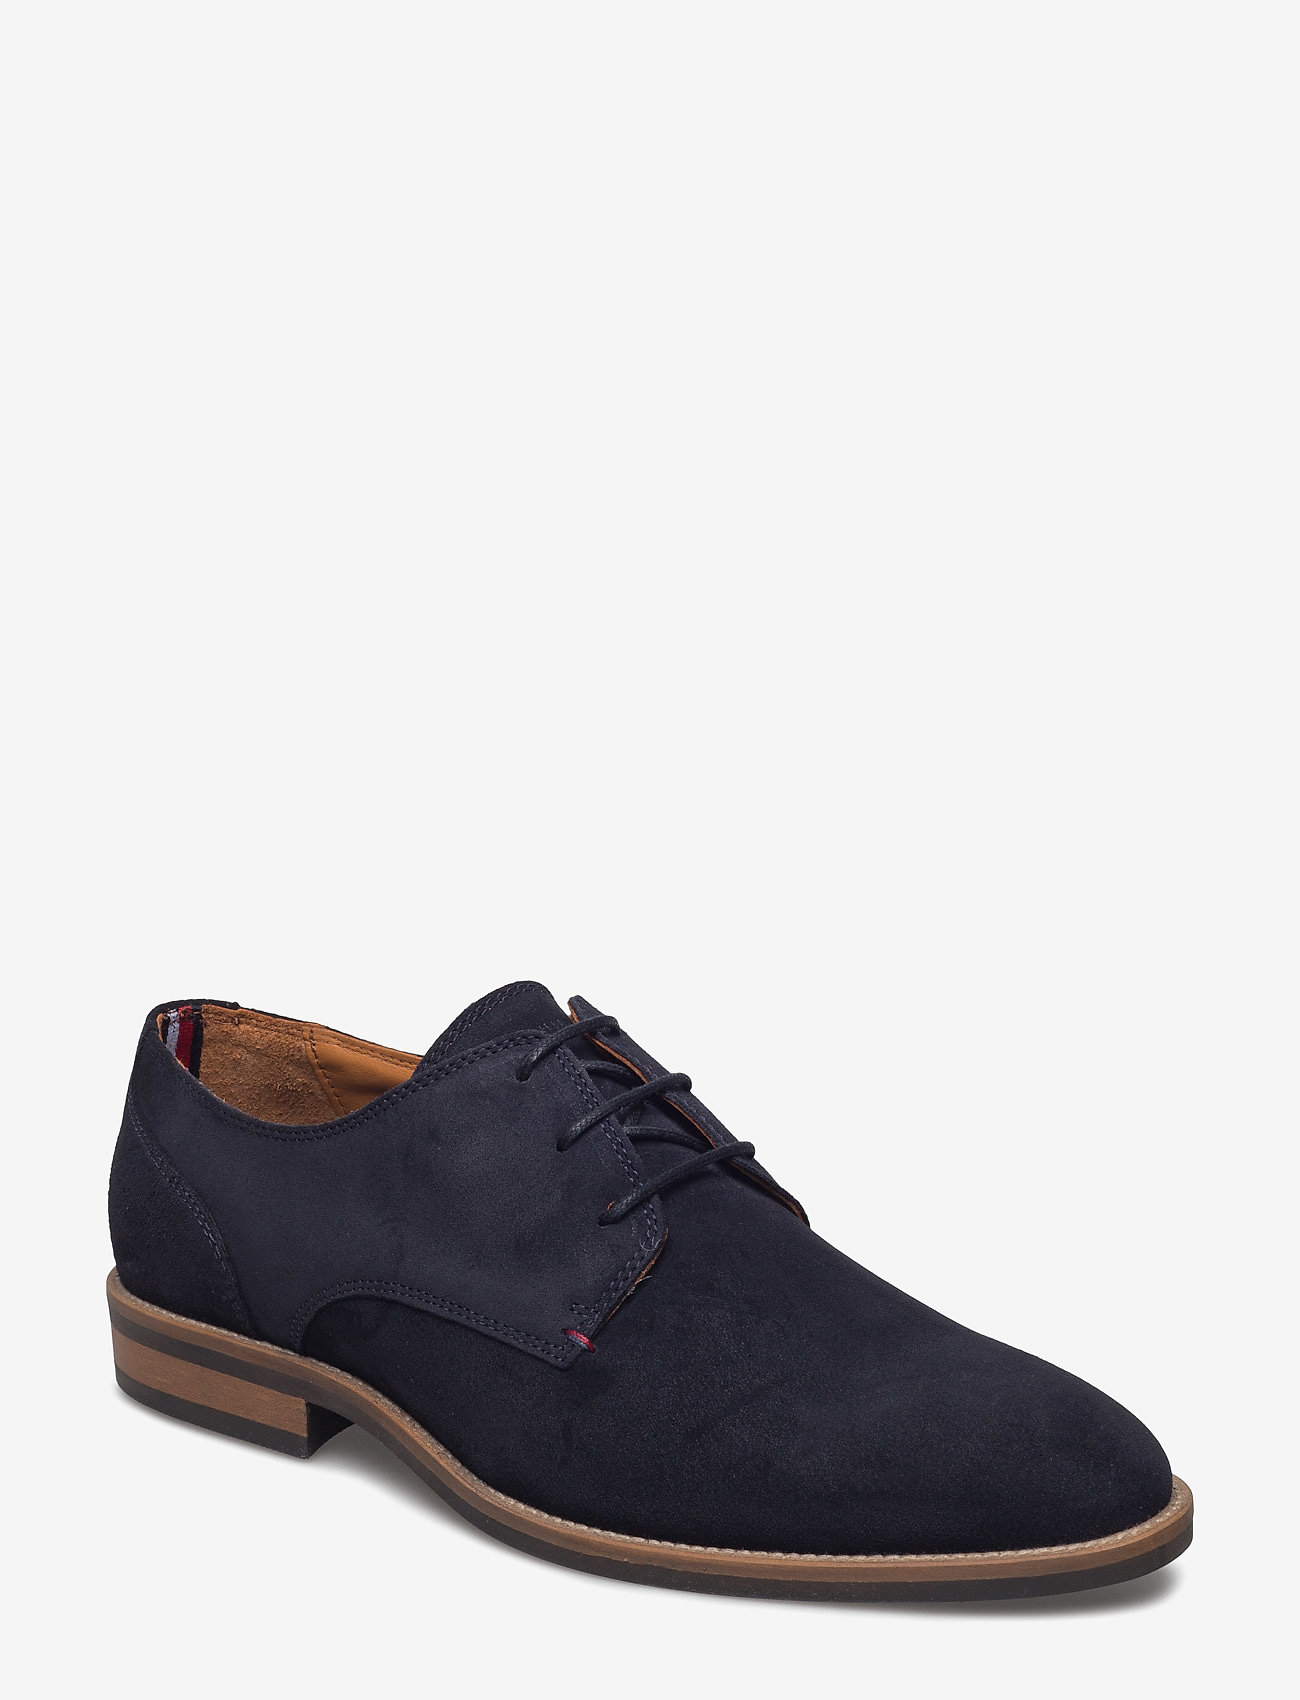 Tommy Hilfiger - ESSENTIAL SUEDE LACE UP DERBY - laced shoes - midnight - 0